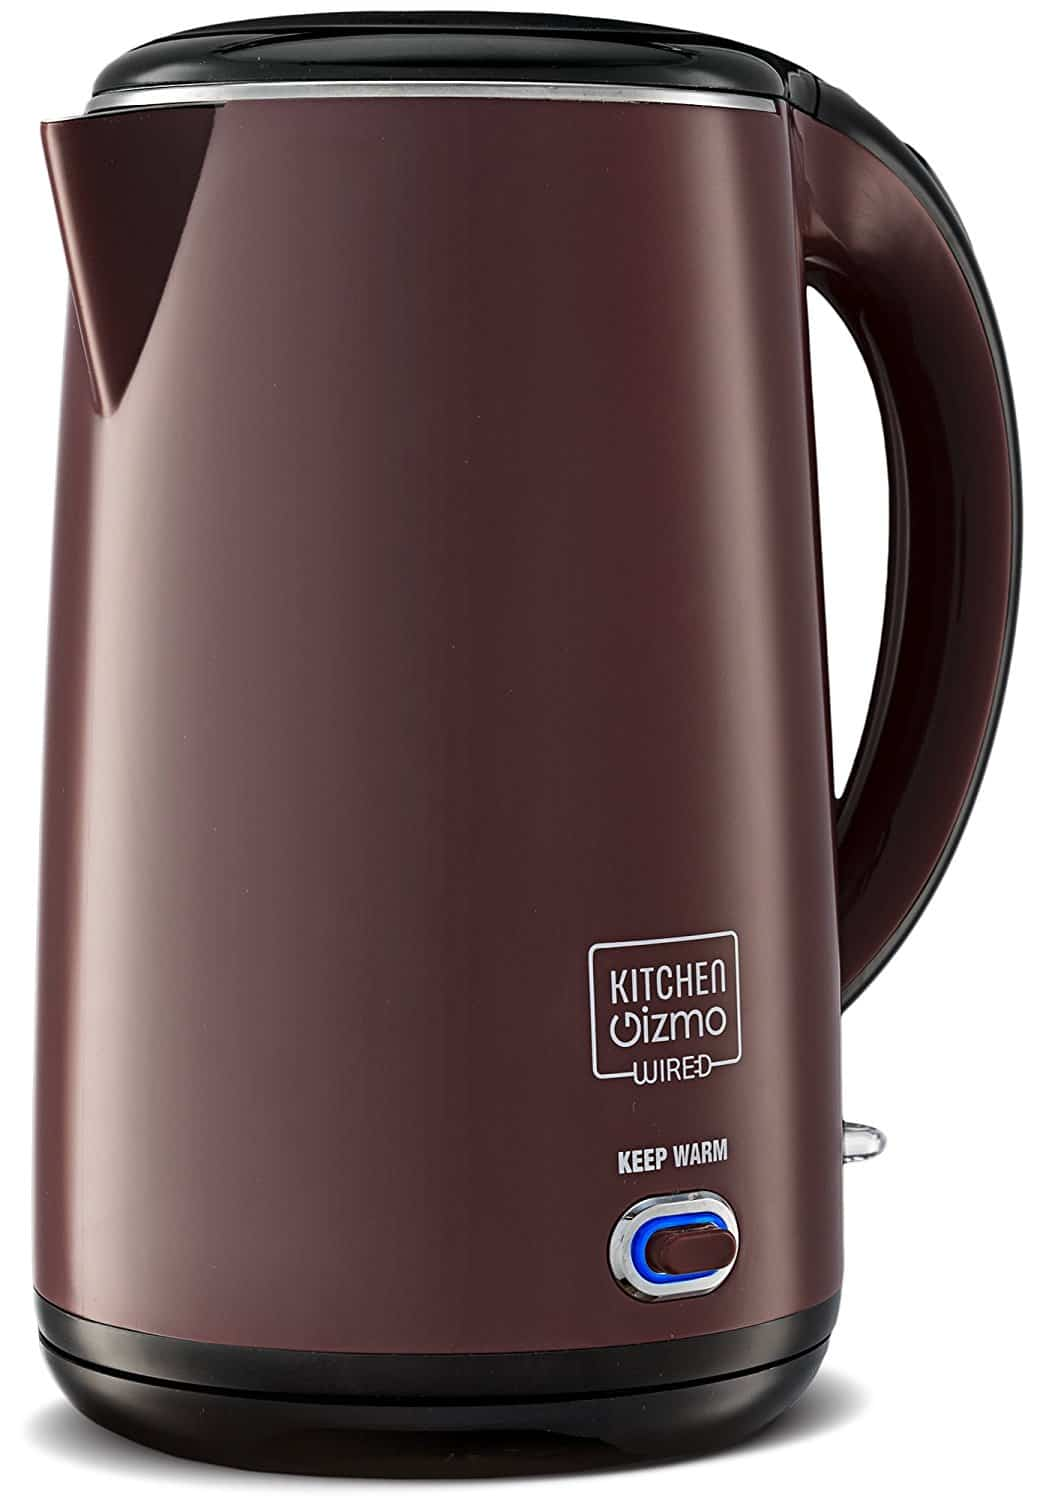 Kitchen Gizmo Stainless Steel Double-Walled Electric Kettle